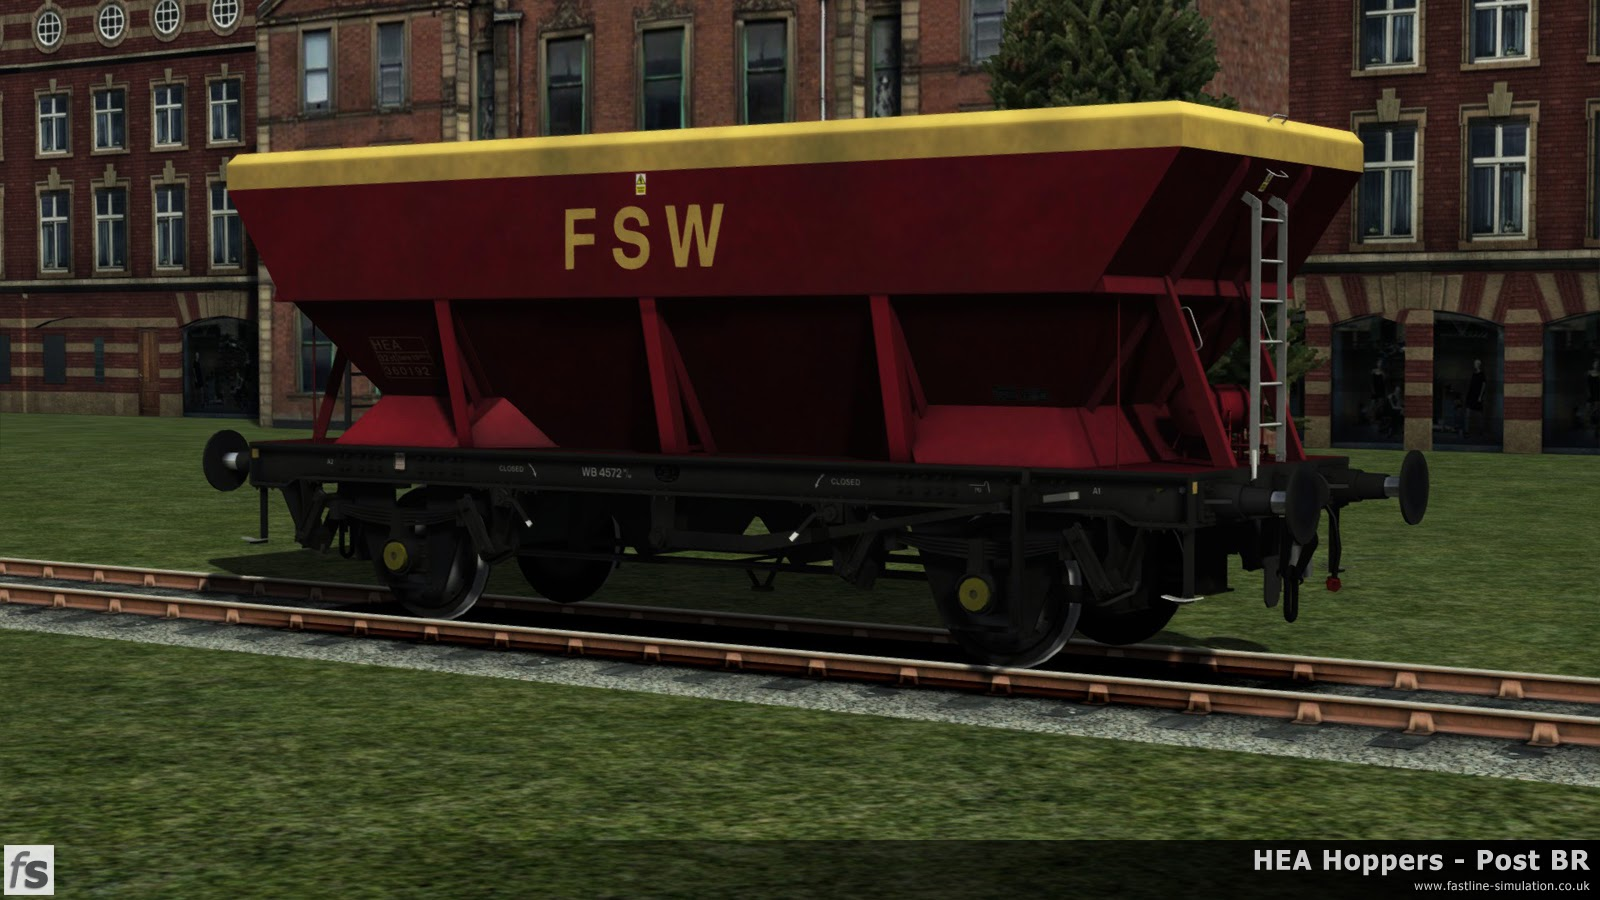 HEA Hoppers - Post BR: One of the earlier built HEA hoppers with a central ladder and small supports at the corner of the hopper in almost ex-works Red and Gold livery with a wide band and big logo under development for Train Simulator 2014.